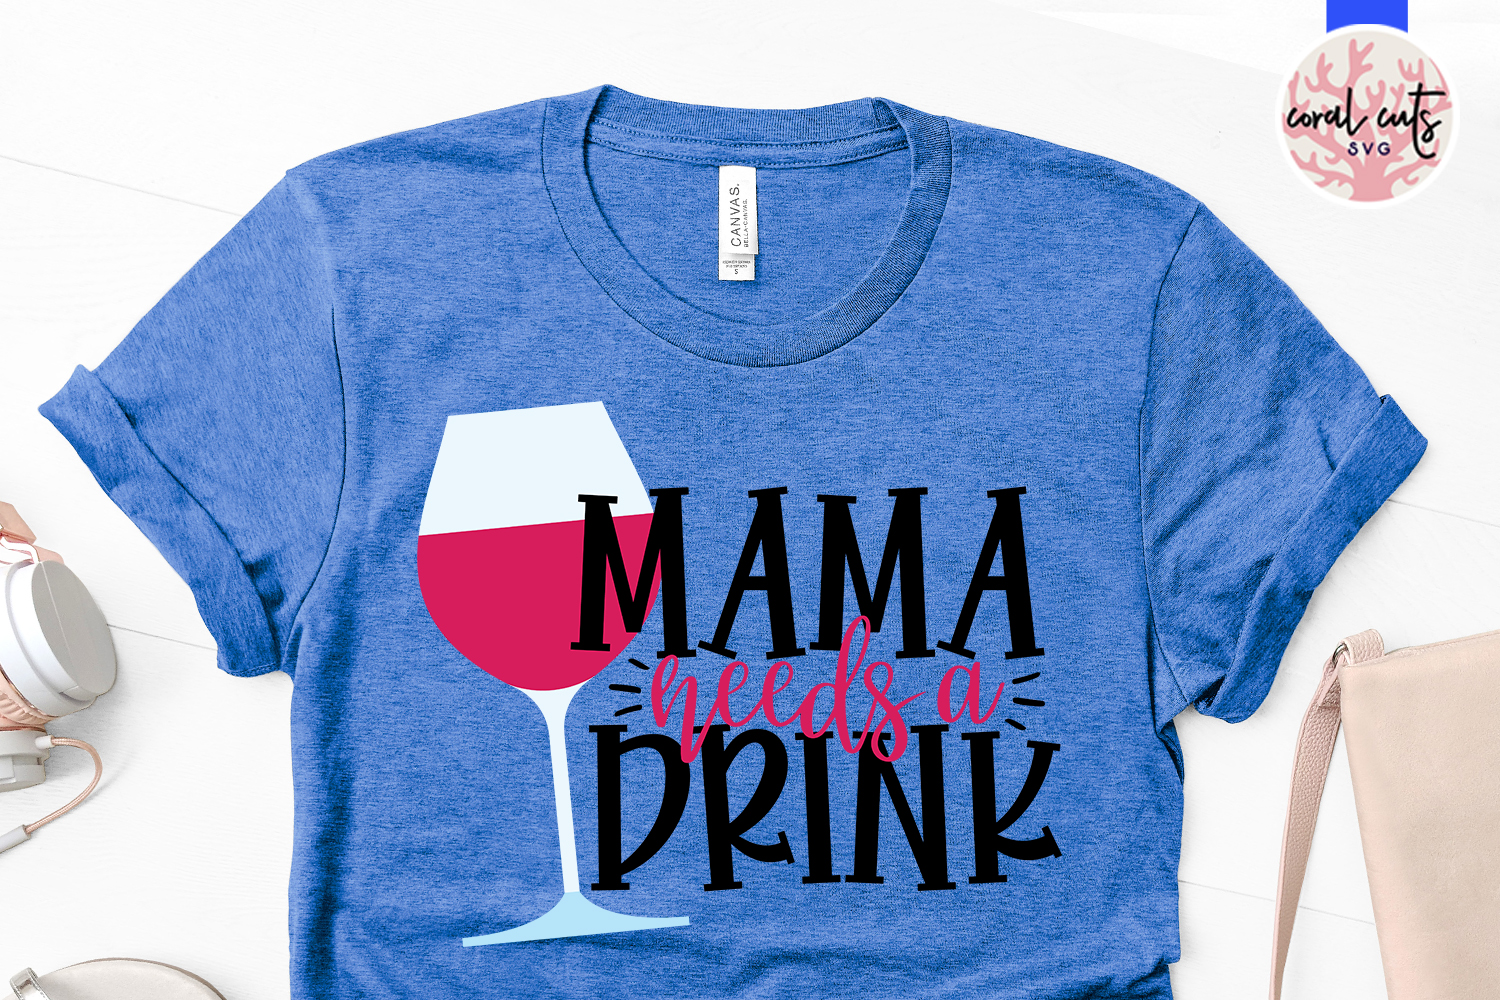 Mama needs a drink - Mother SVG EPS DXF PNG Cutting File example image 2